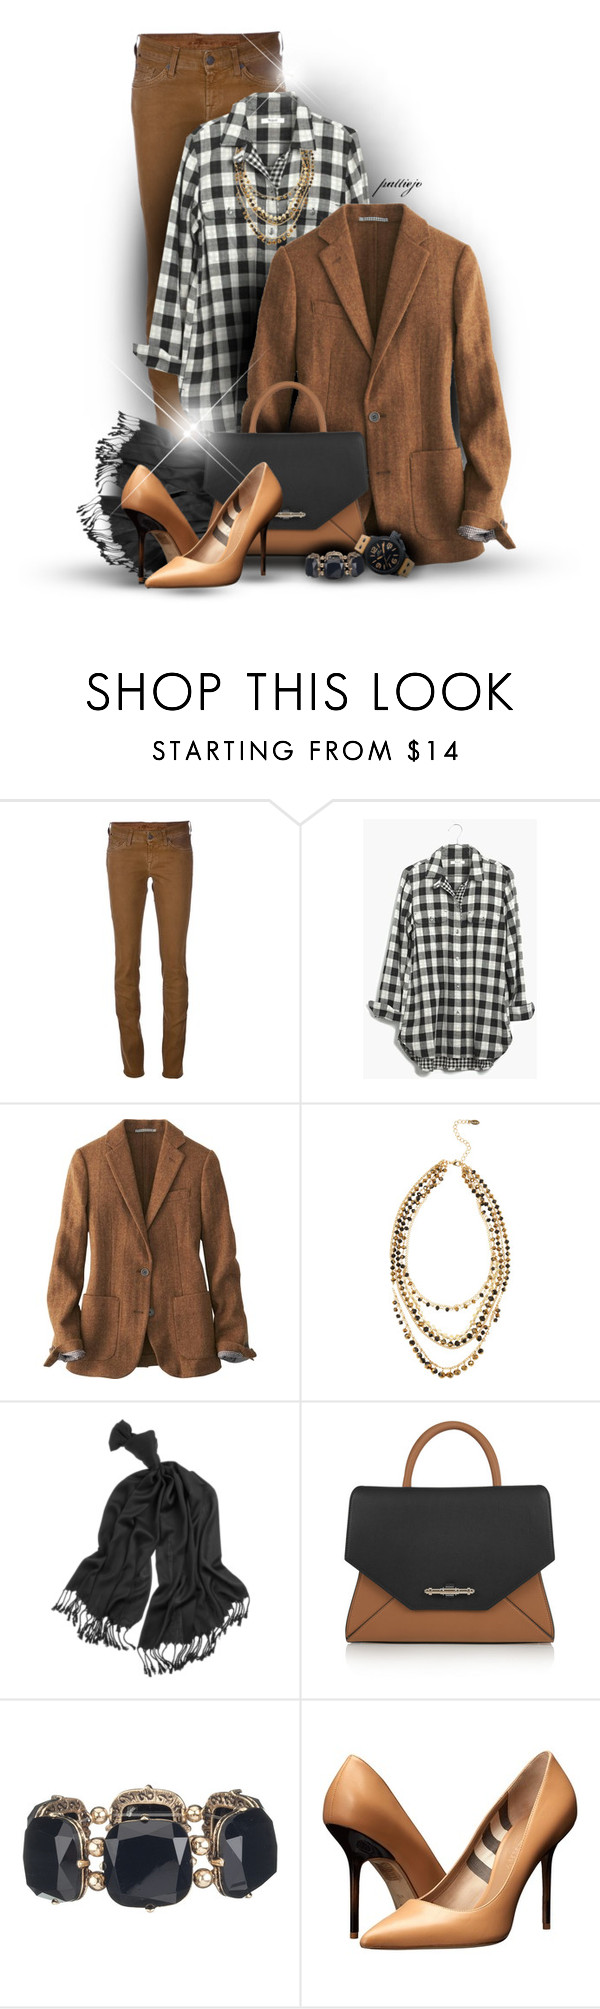 """""""The Ex-Boyfriend Shirt"""" by rockreborn ❤ liked on Polyvore featuring 7 For All Mankind, Madewell, Uniqlo, ALDO, White House Black Market, Givenchy, Burberry, TW Steel, gingham and polyvoreeditorial"""